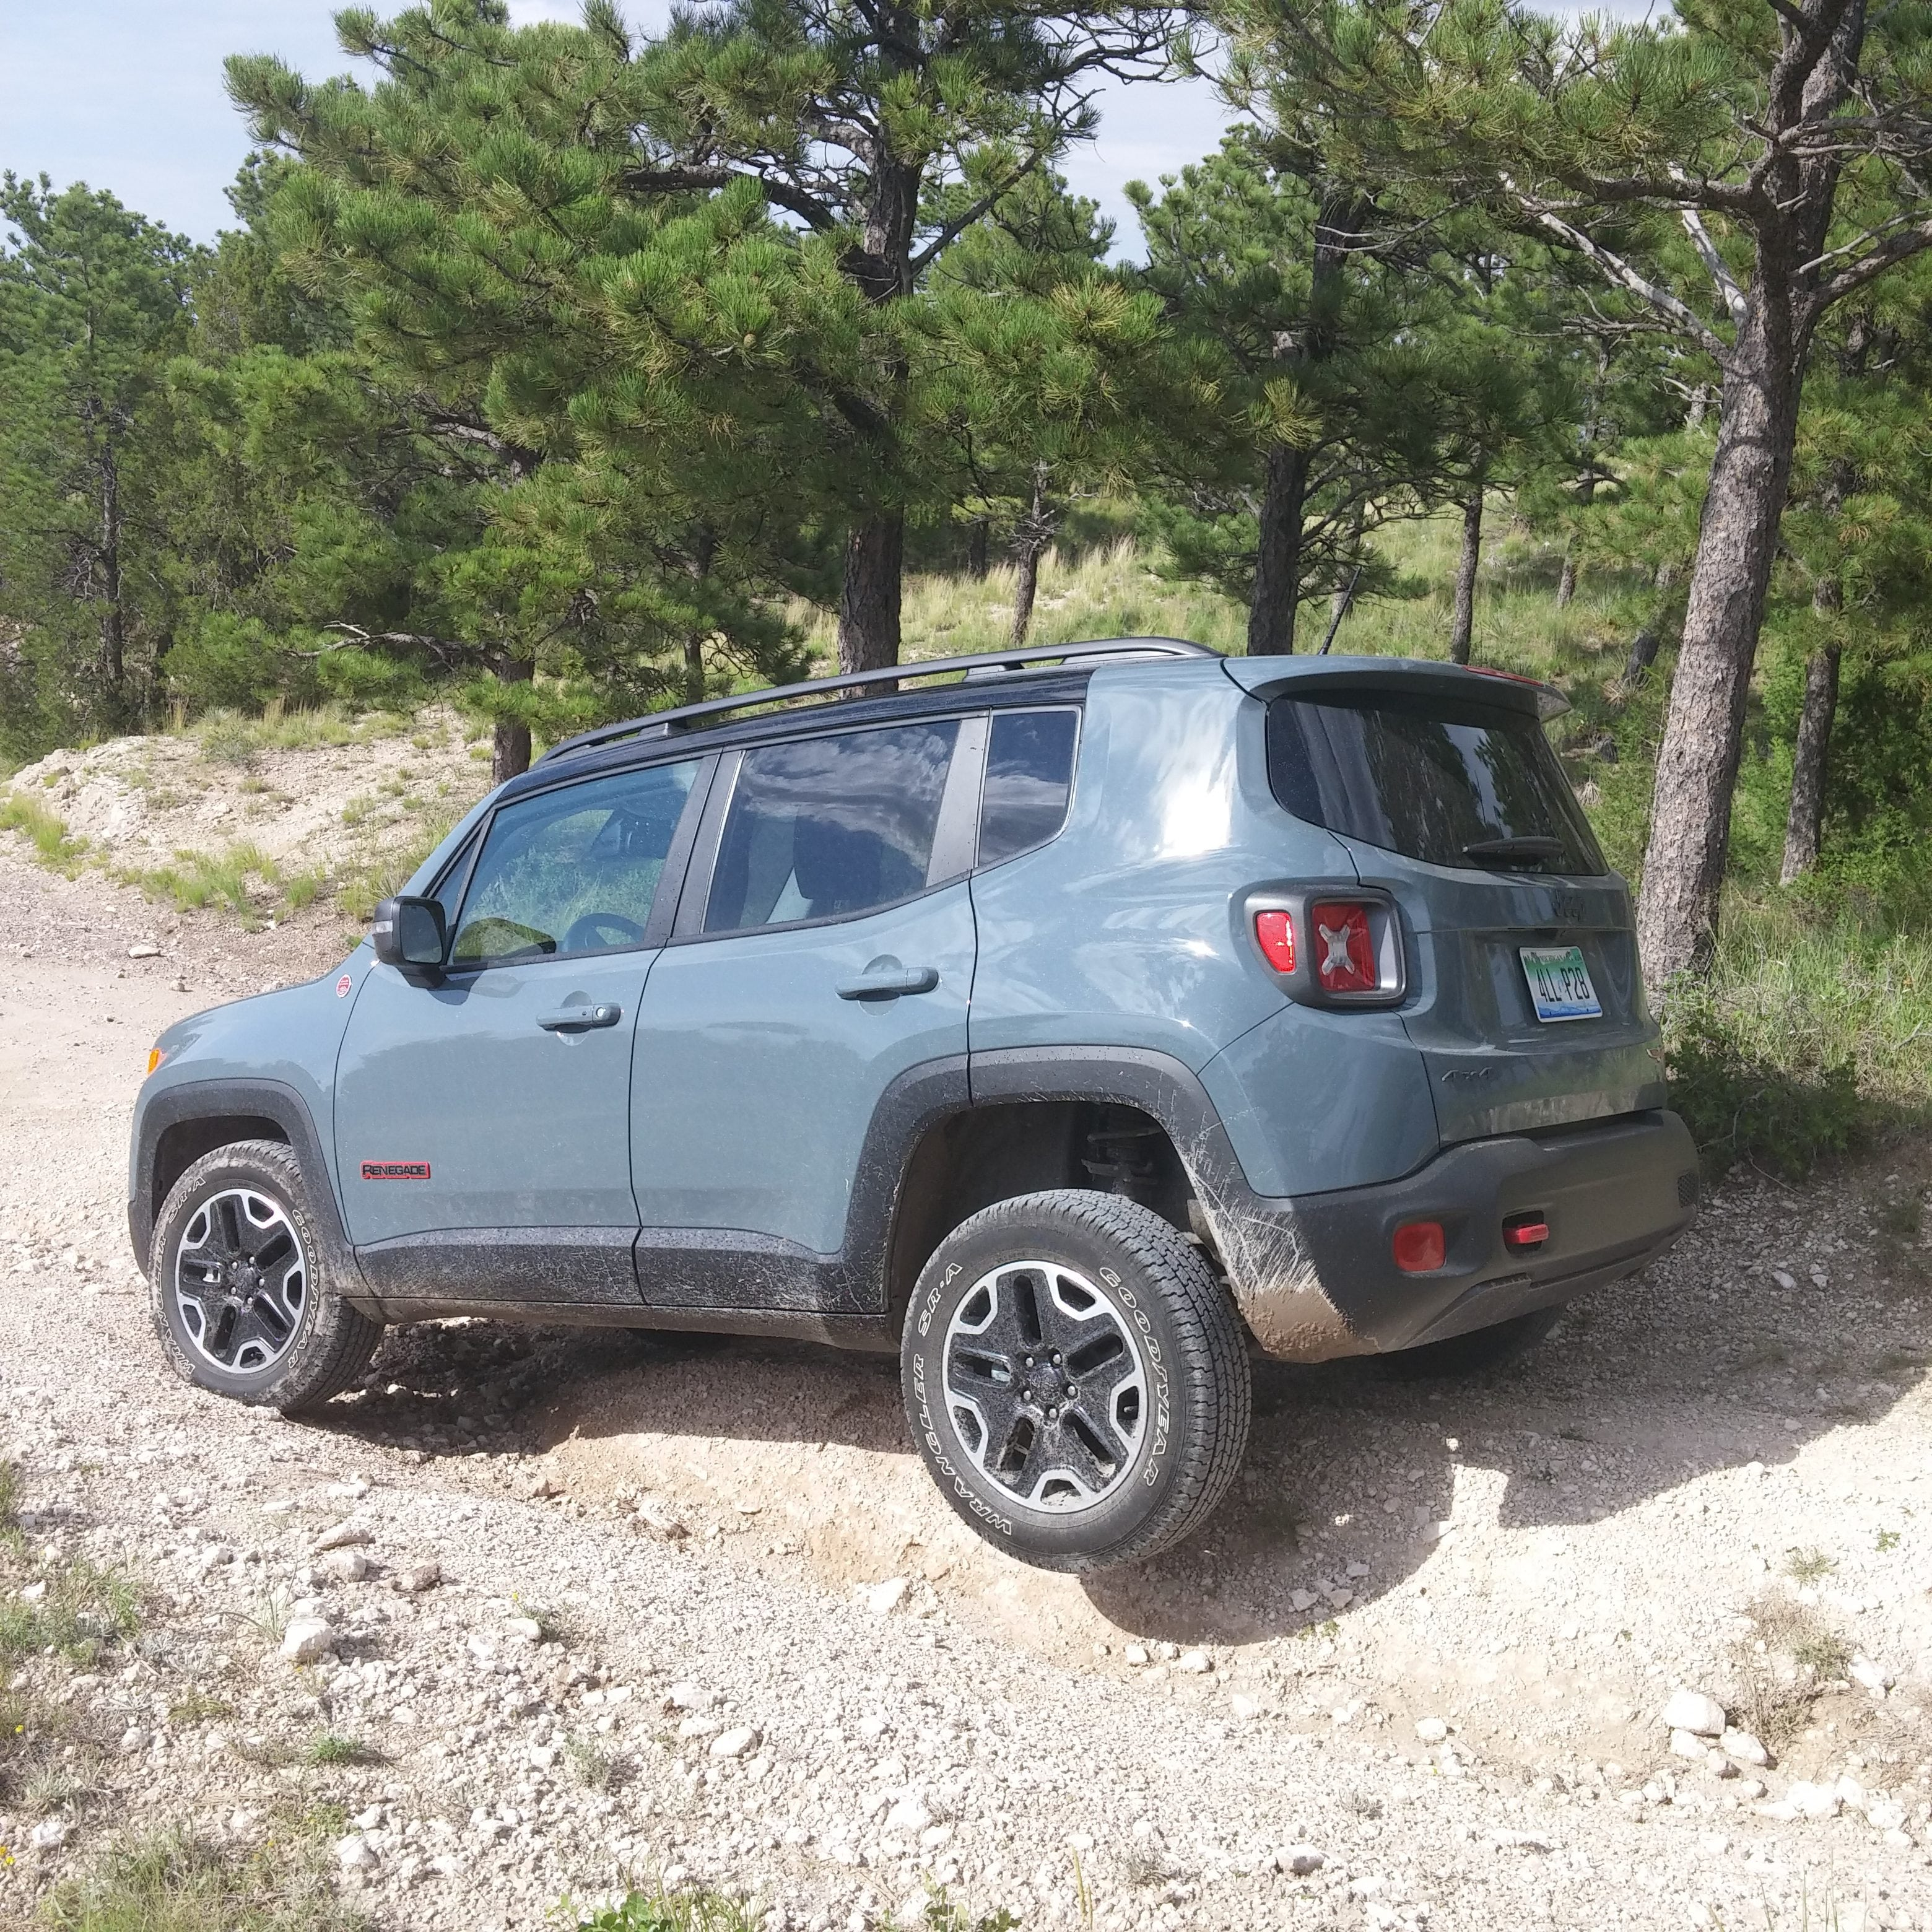 Review: 2016 Jeep Renegade Trailhawk is as trail-ready as its name implies